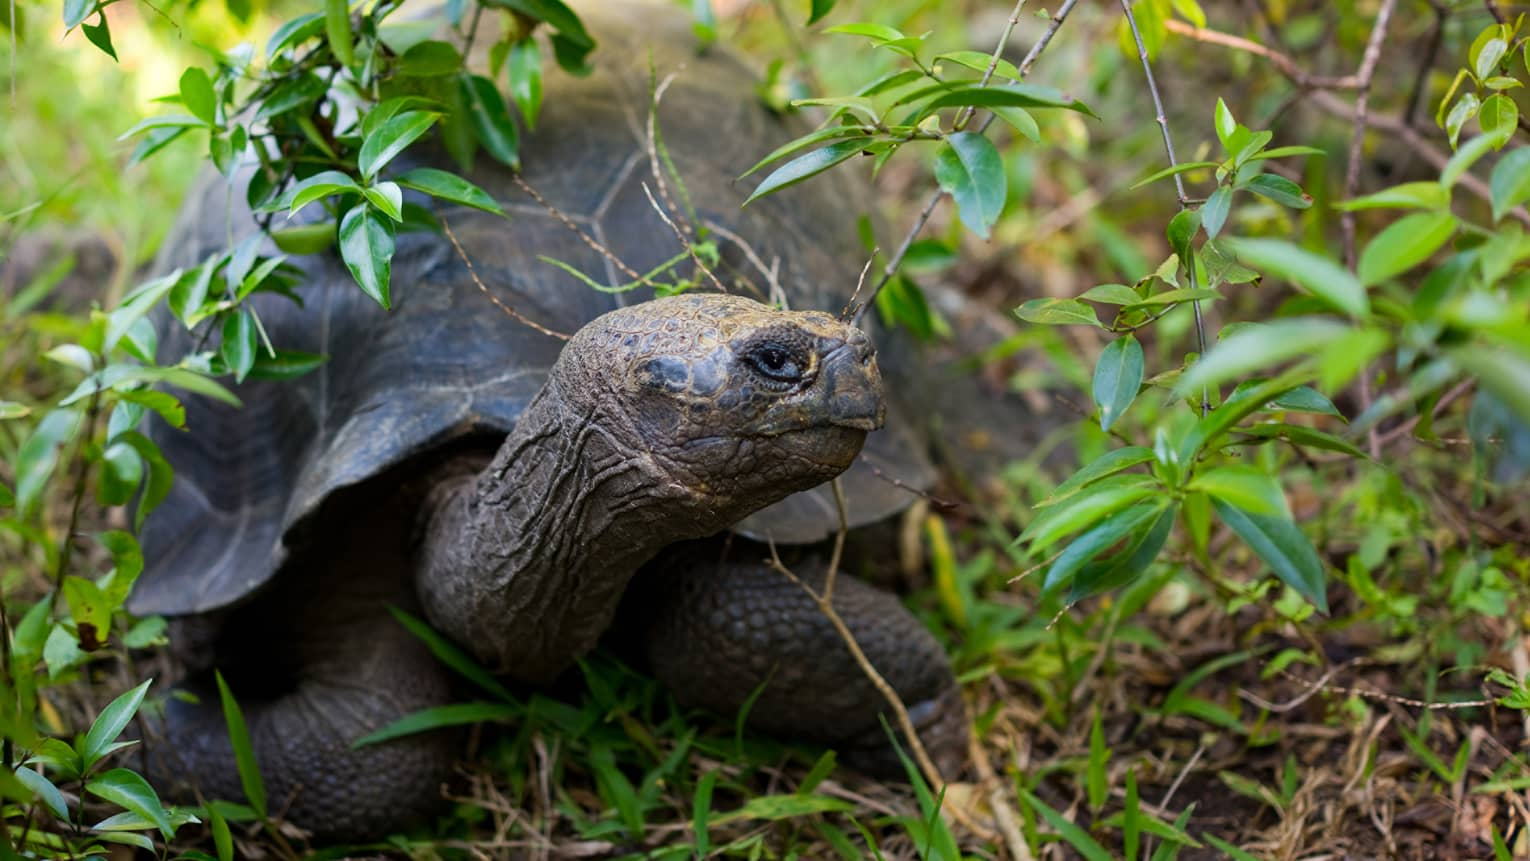 A tortoise relaxes under the shade of green foliage